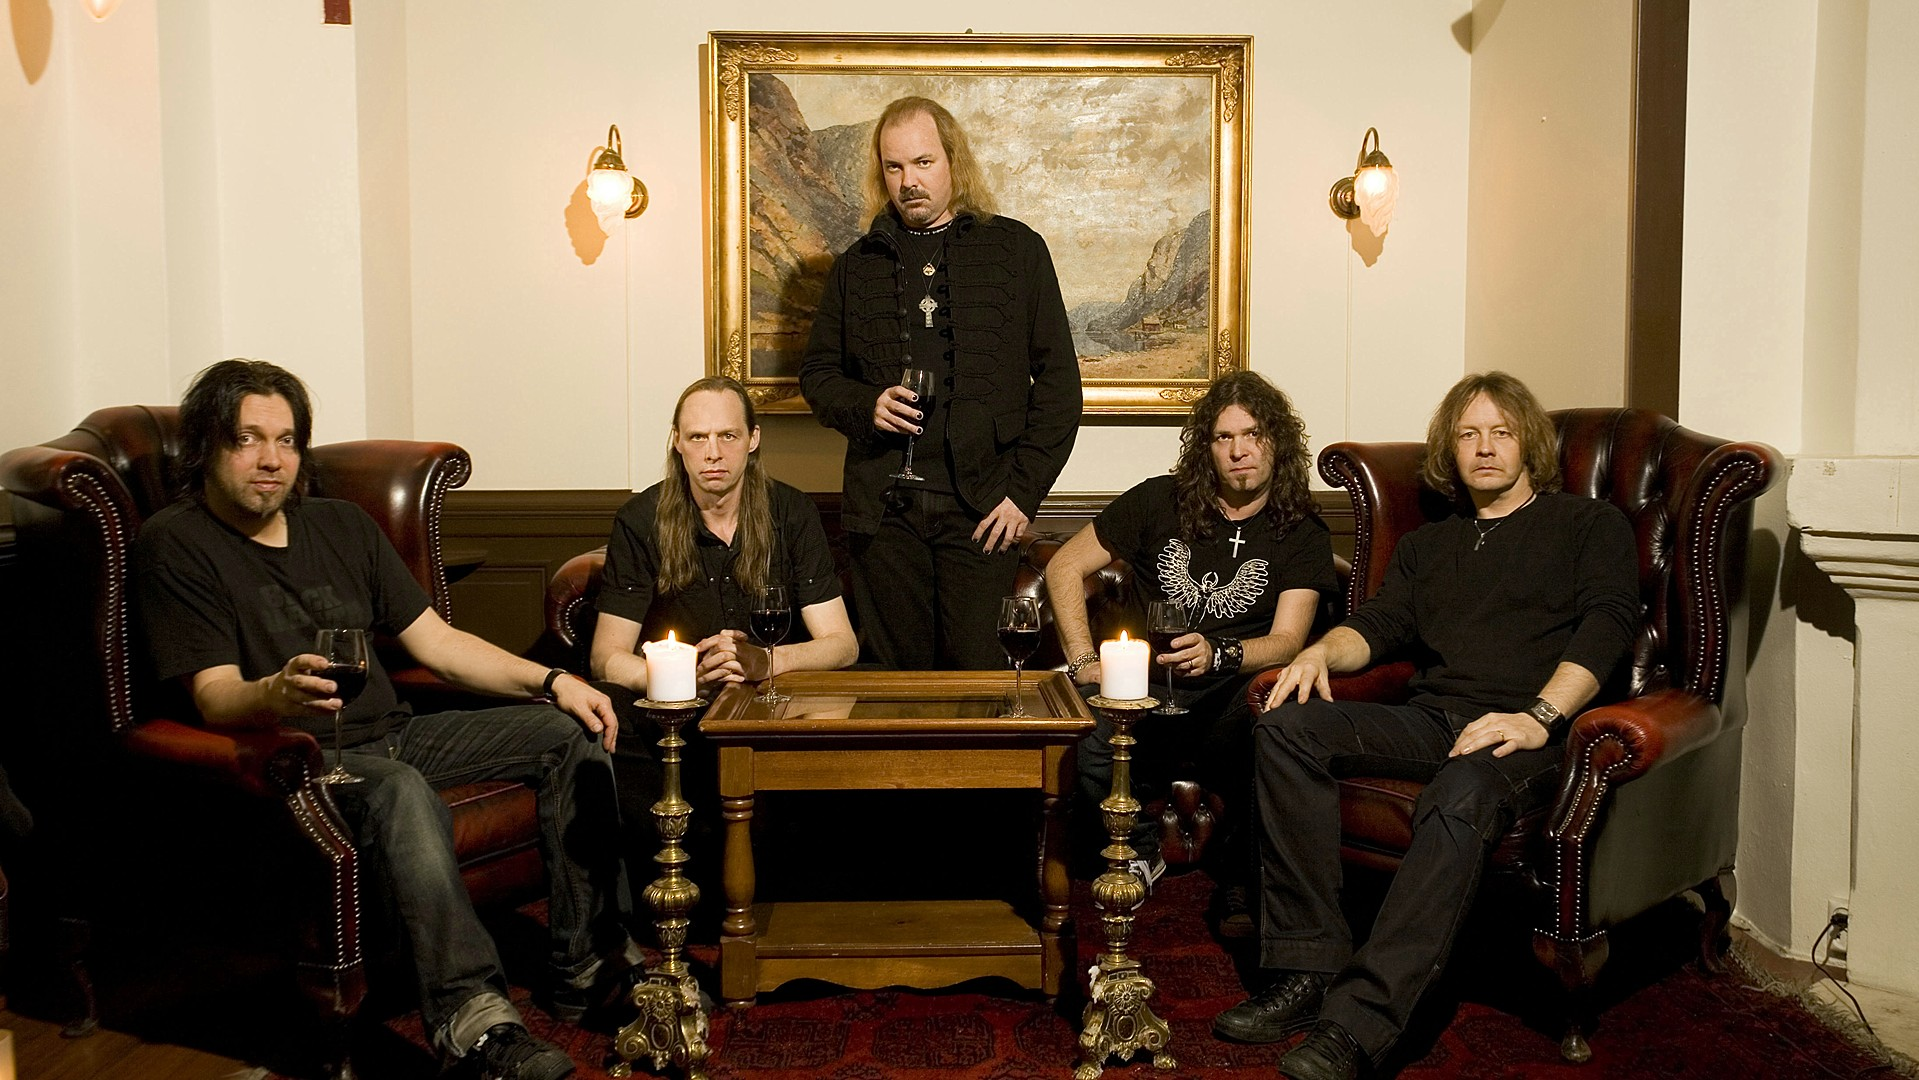 Candlemass Wallpaper and Background Image 1919x1080 ID196040 1919x1080